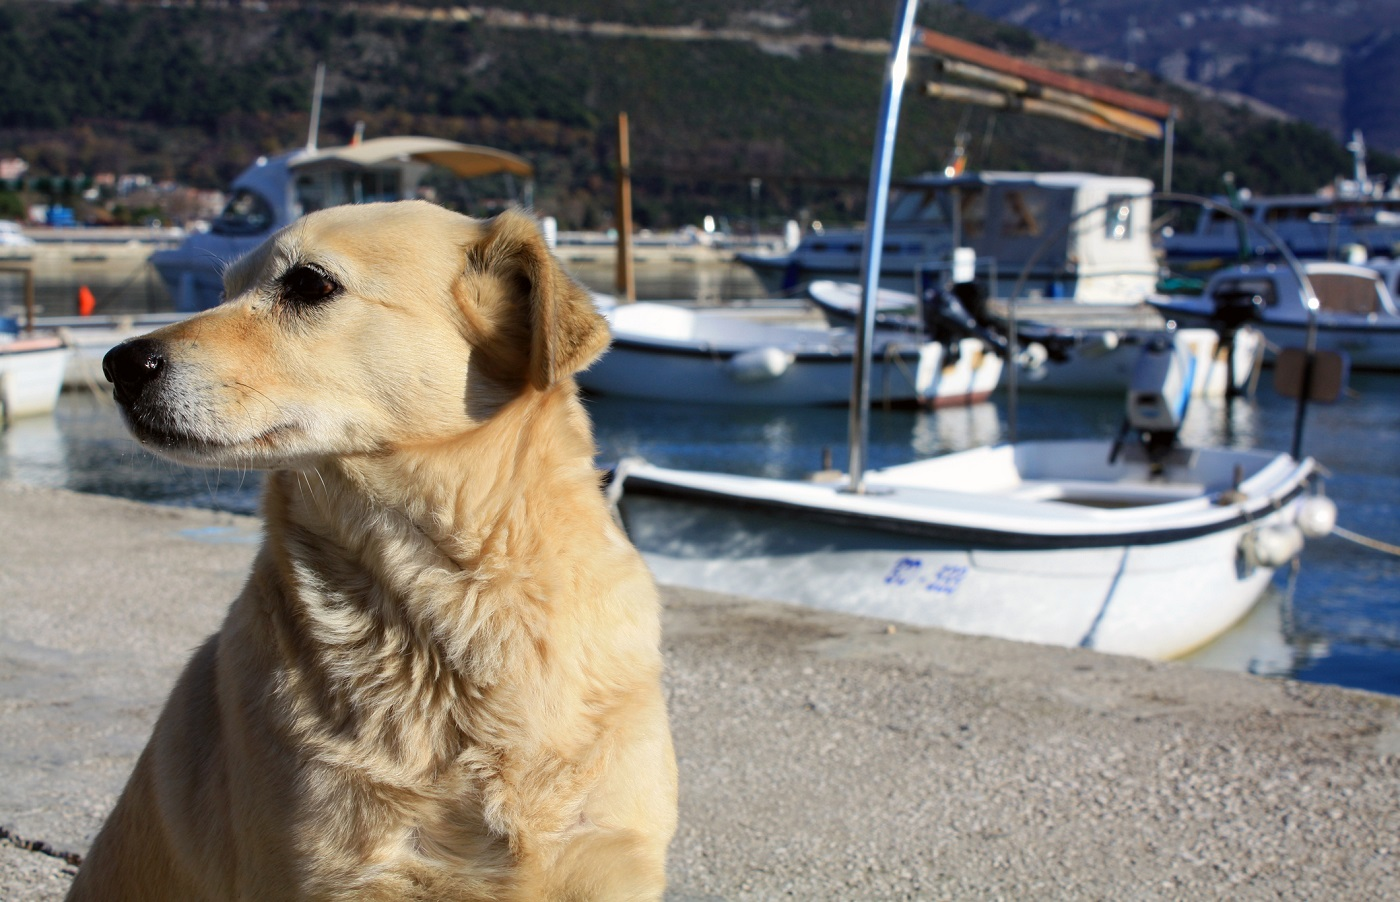 North Carolina pet friendly hotels - Dog at the dock